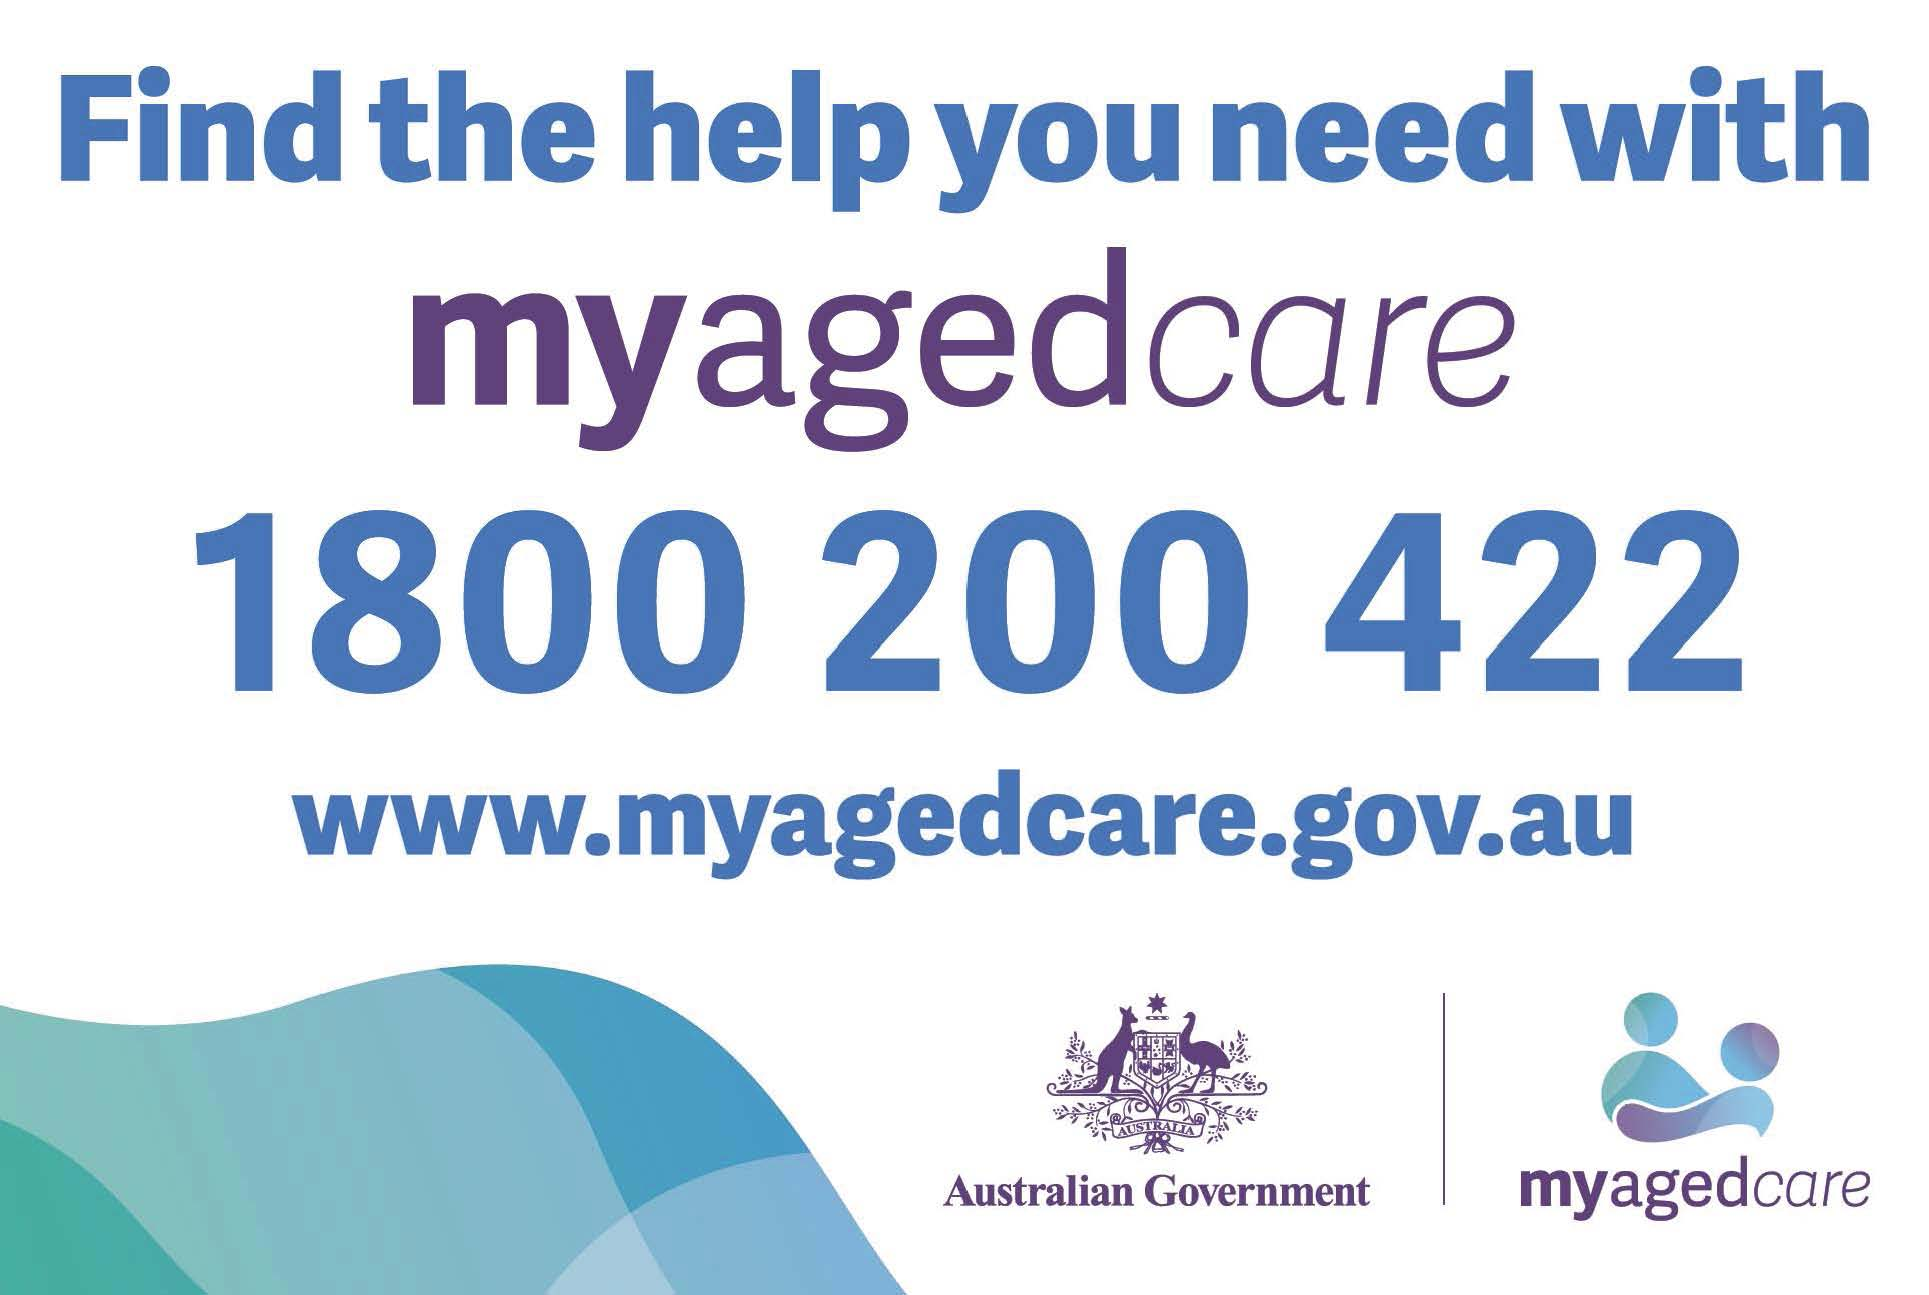 Find the help you need with MyAgedCare: 1800 200 422; www.myagedcare.gov.au